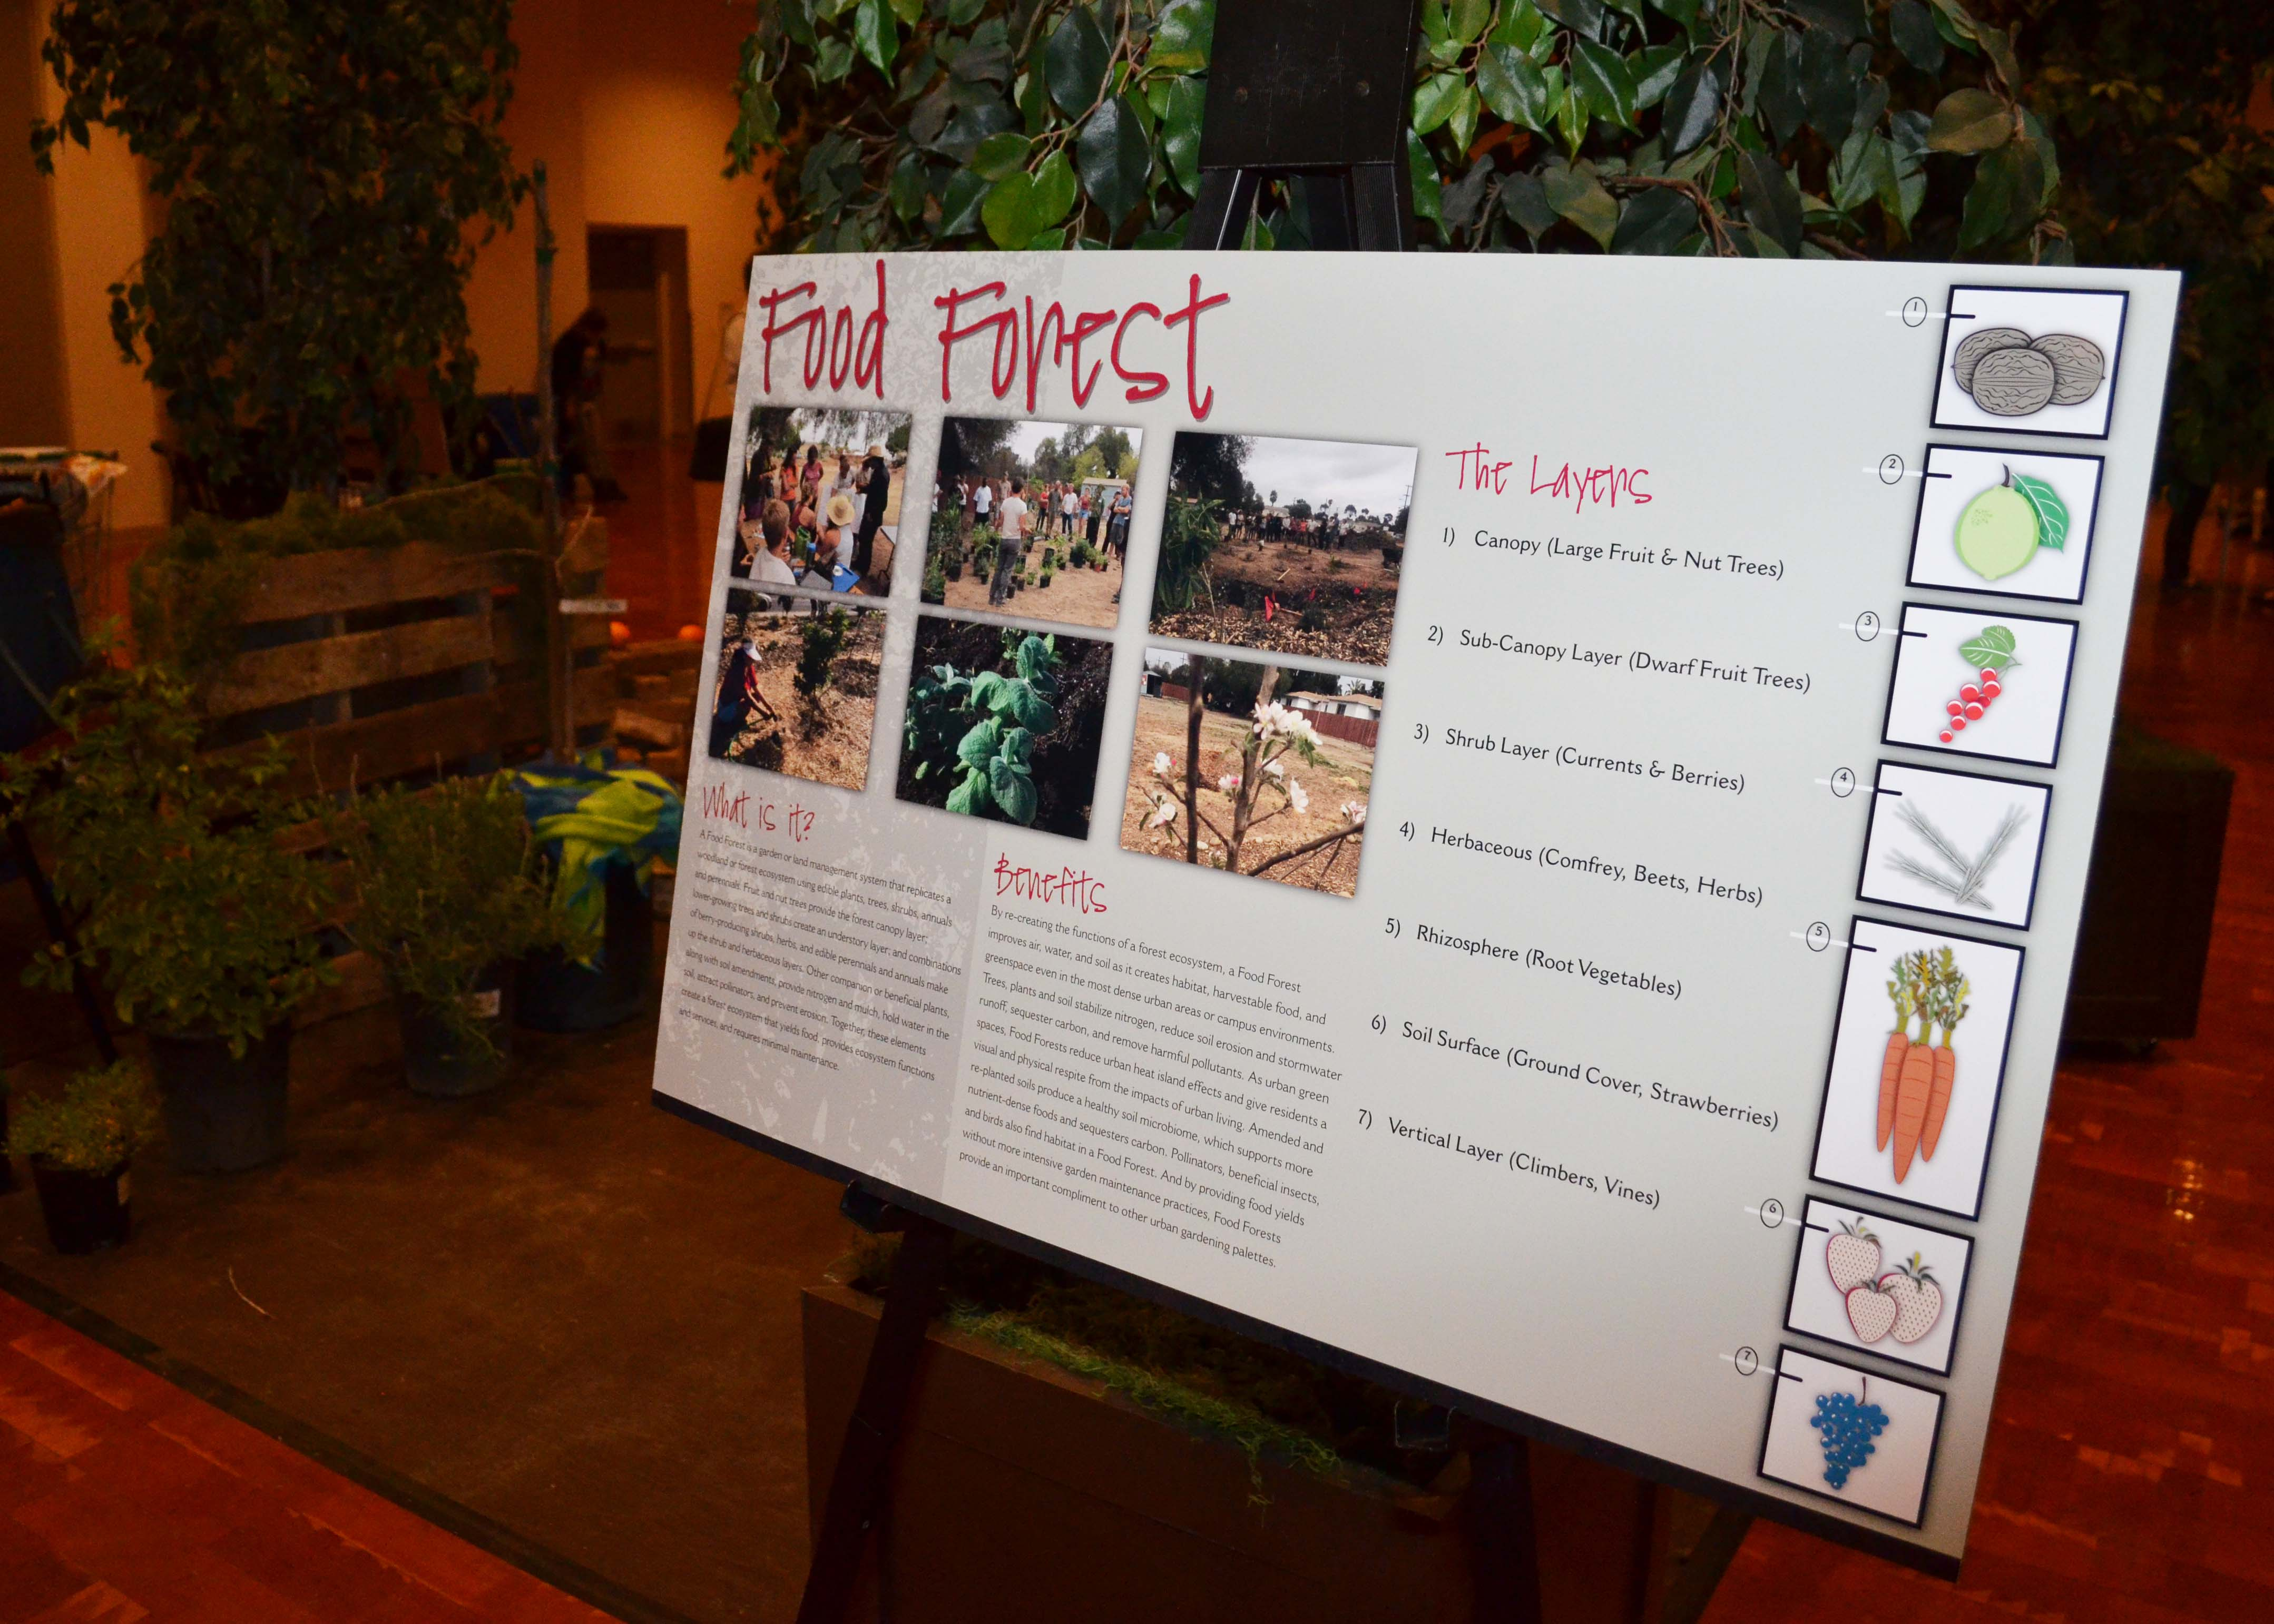 Food Forest Exhibit